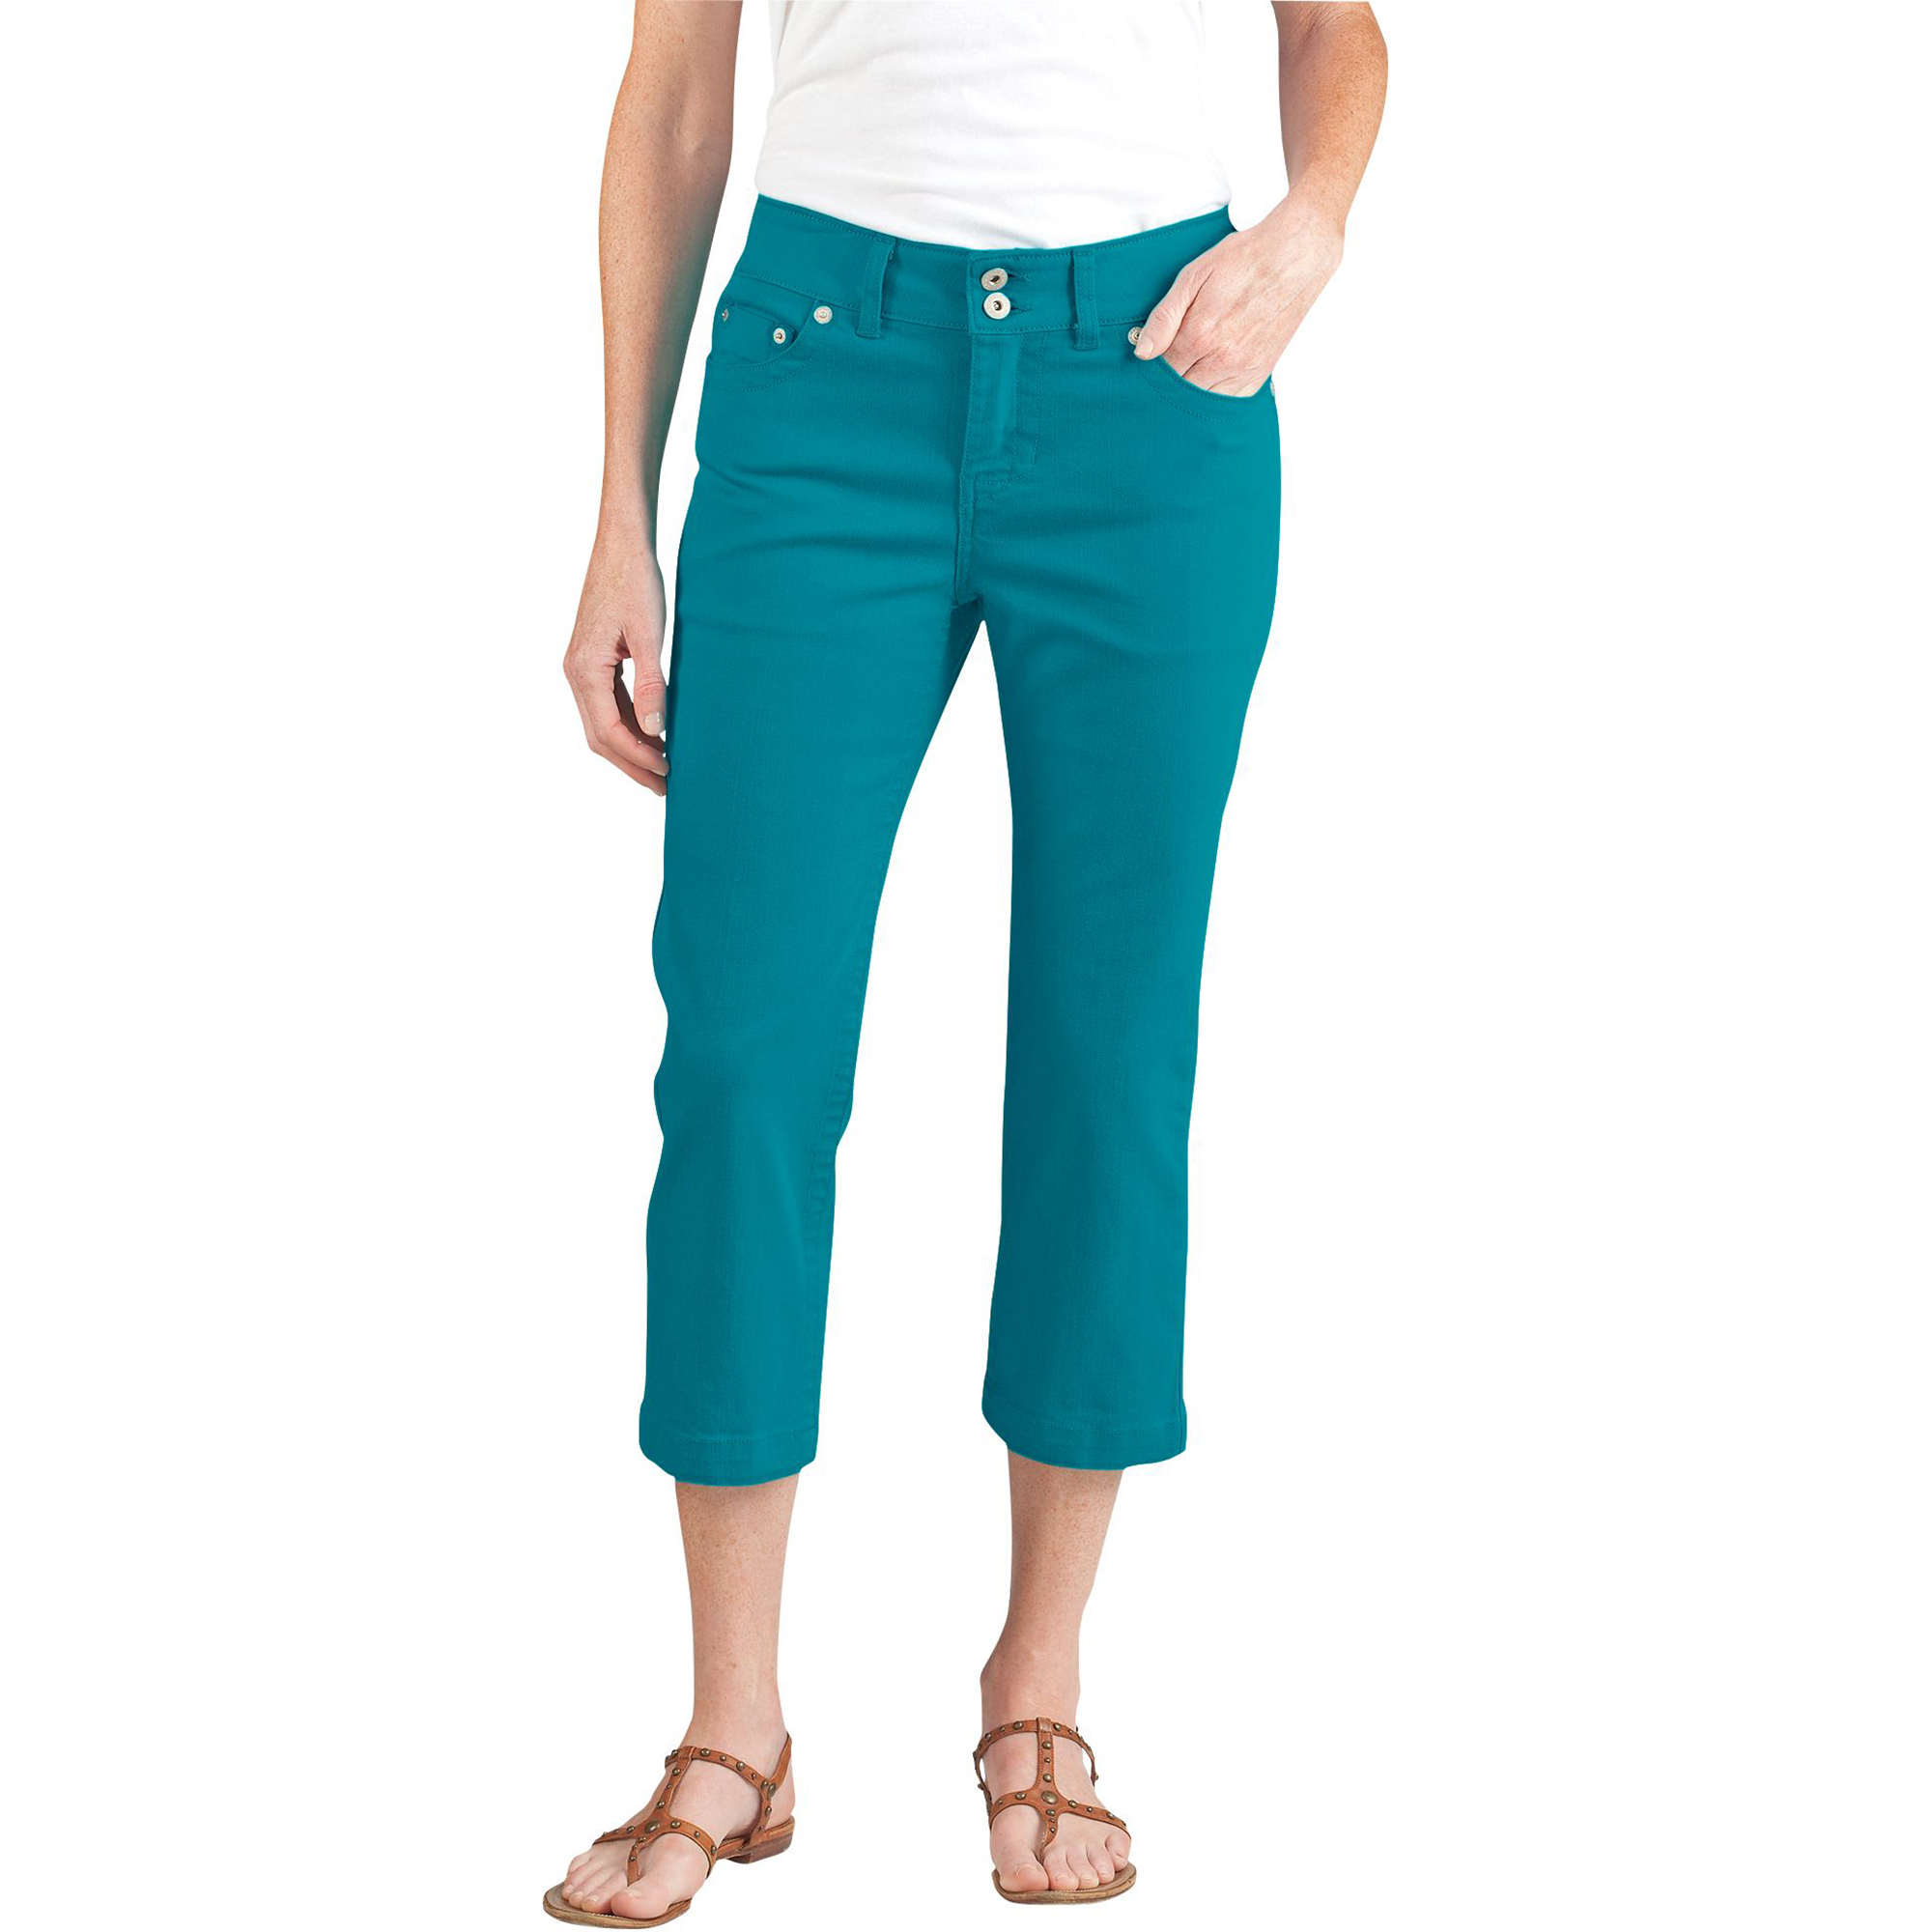 Dickies FR335 Women's Relaxed Fit Twill Five Pocket Capri Jean at Sears.com